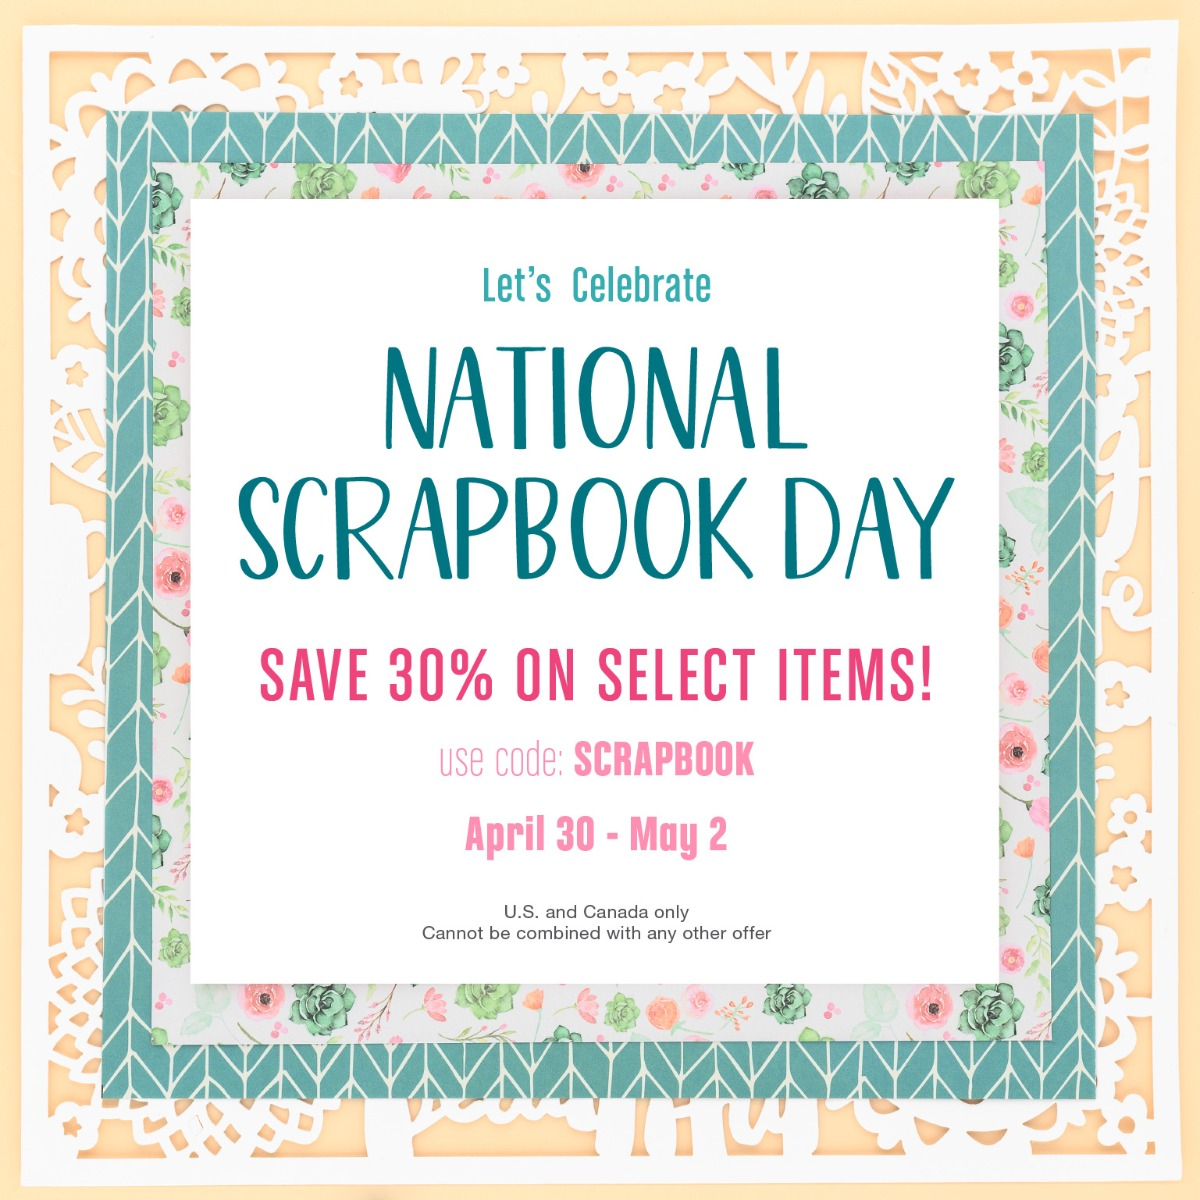 Celebrate National Scrapbooking Day with 30% Off Select Items. Included items shown below. Use code SCRAPBOOK at checkout for 30% off. Valid April 30 through May 2 in the US and Canada only. Cannot be combined with any other offer.